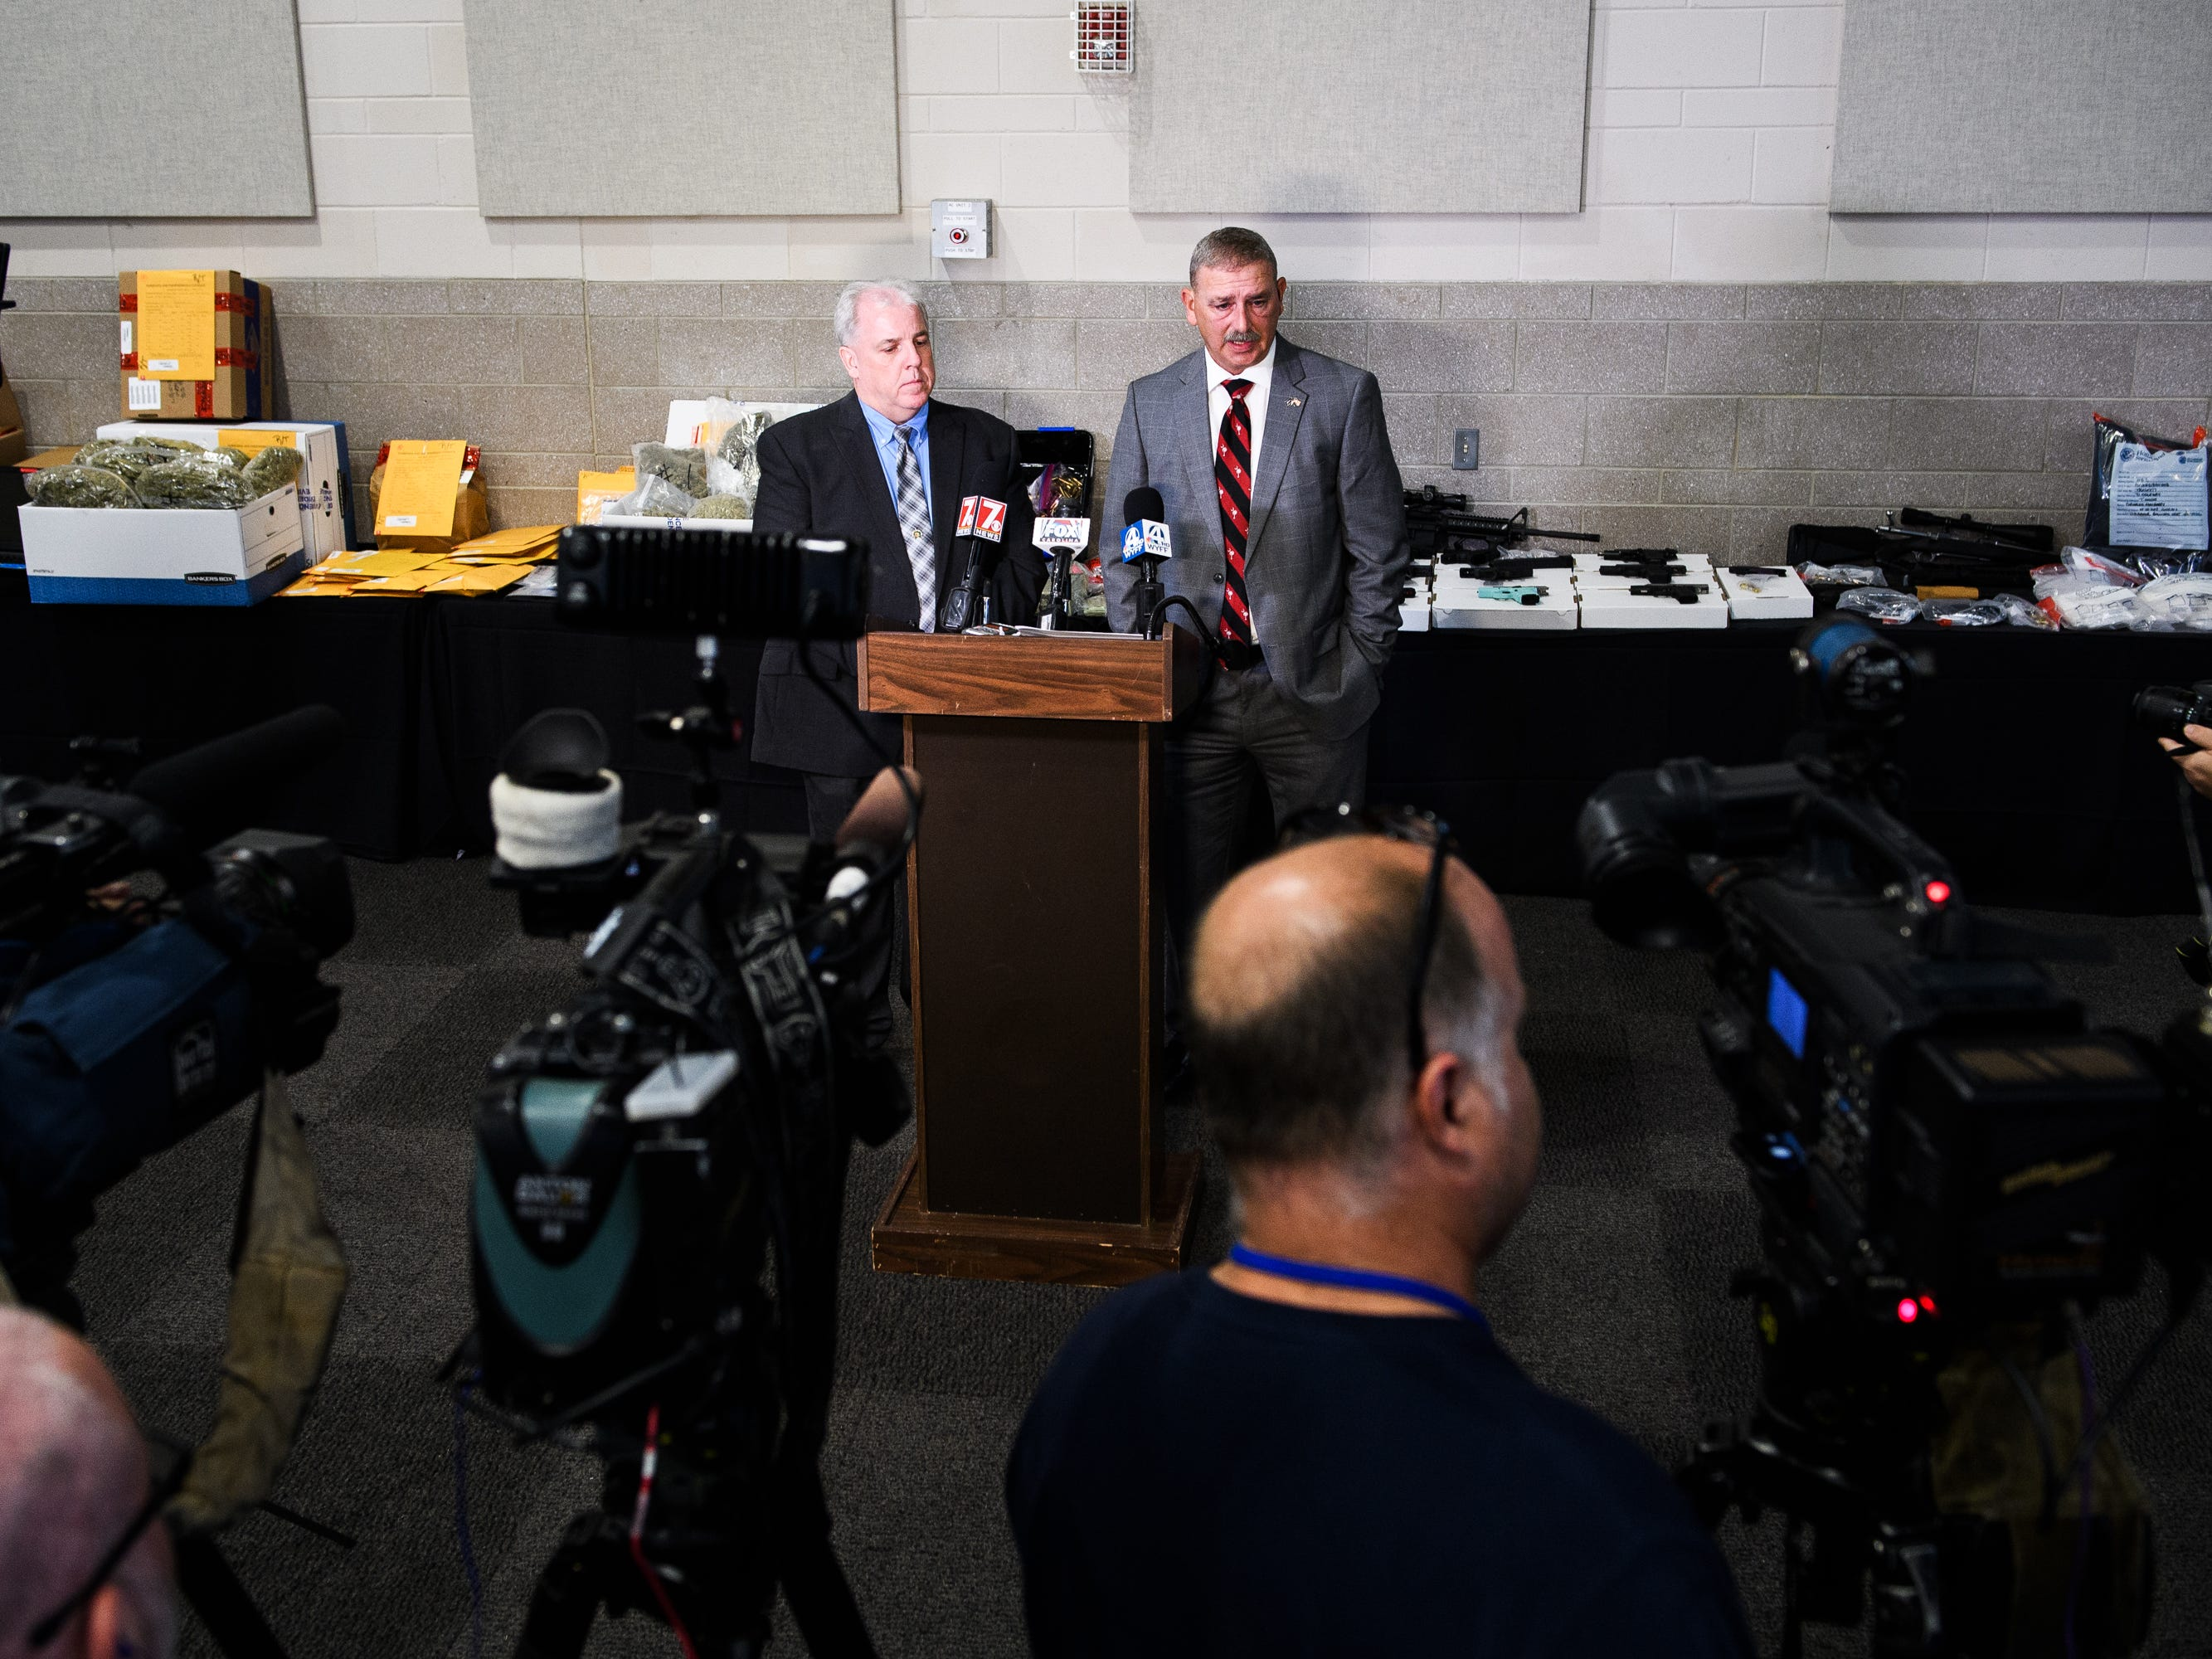 Chuck Wright, the three-termSpartanburg County sheriff who started Rolling Thunderearly in his first term, holds a press conference to tell members of the media how much money, drugs, firearms and other contraband was seized.